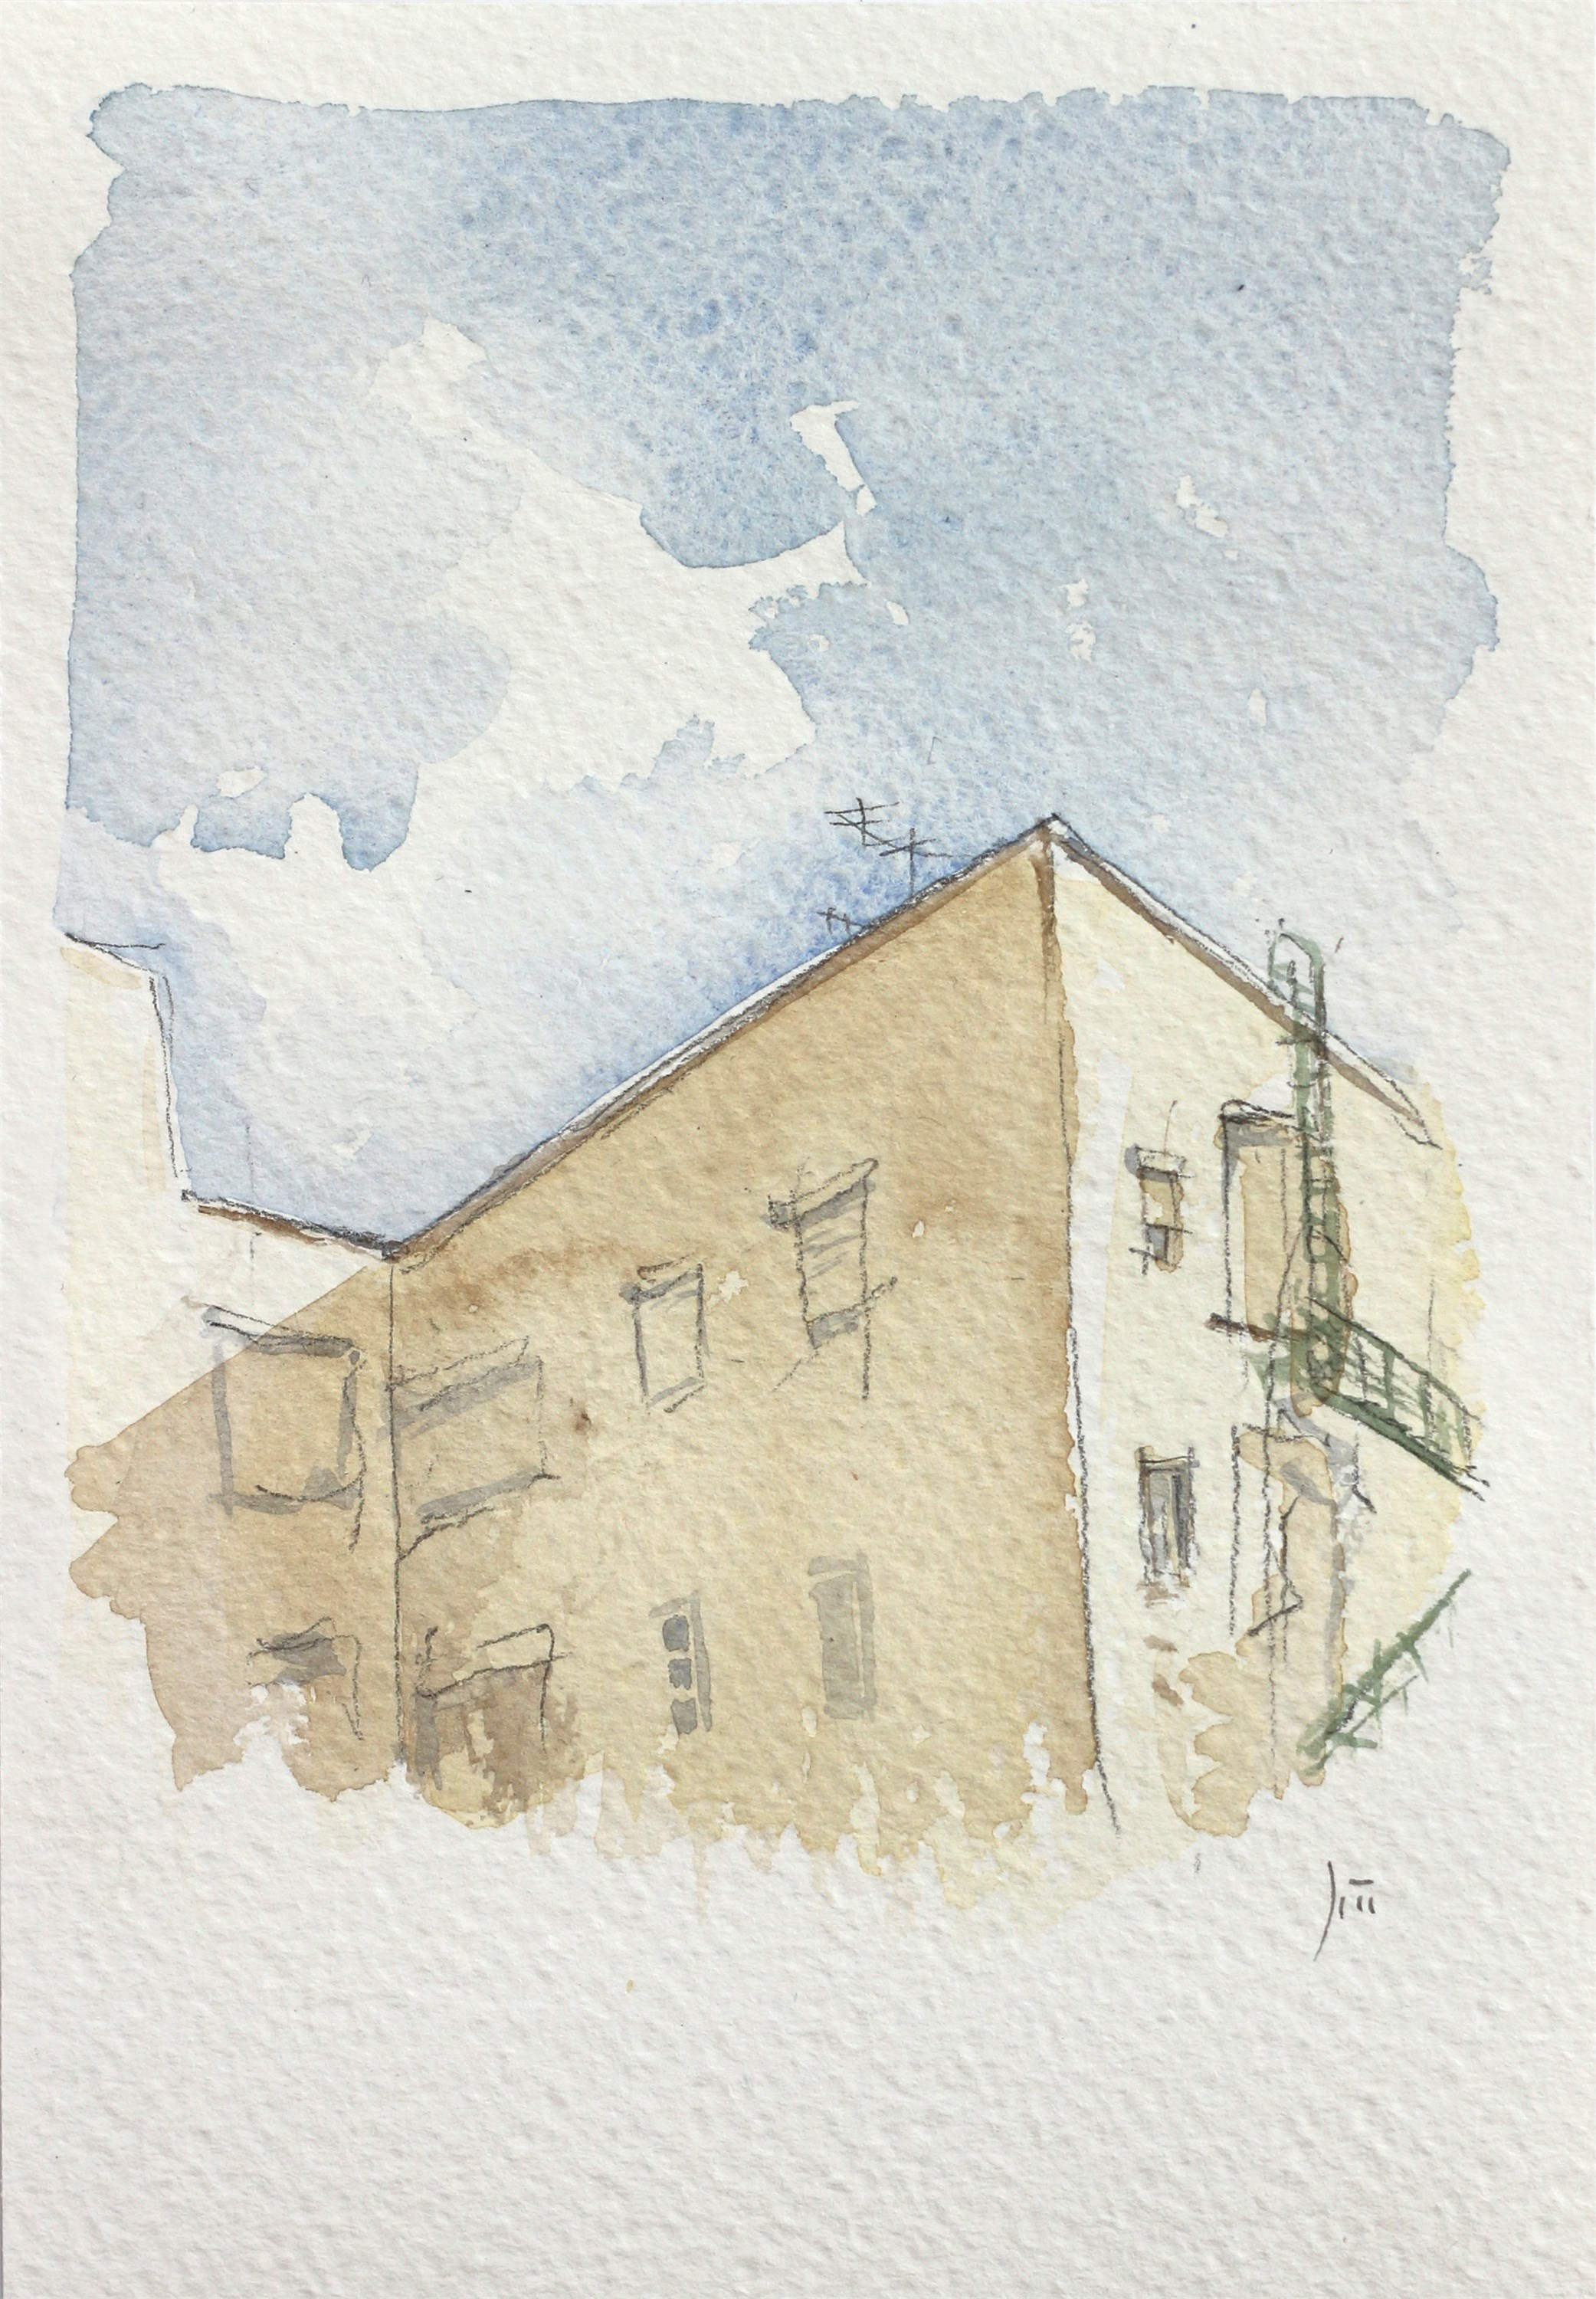 Aguaceiros, original Architecture Watercolor Drawing and Illustration by João Gil Antunes